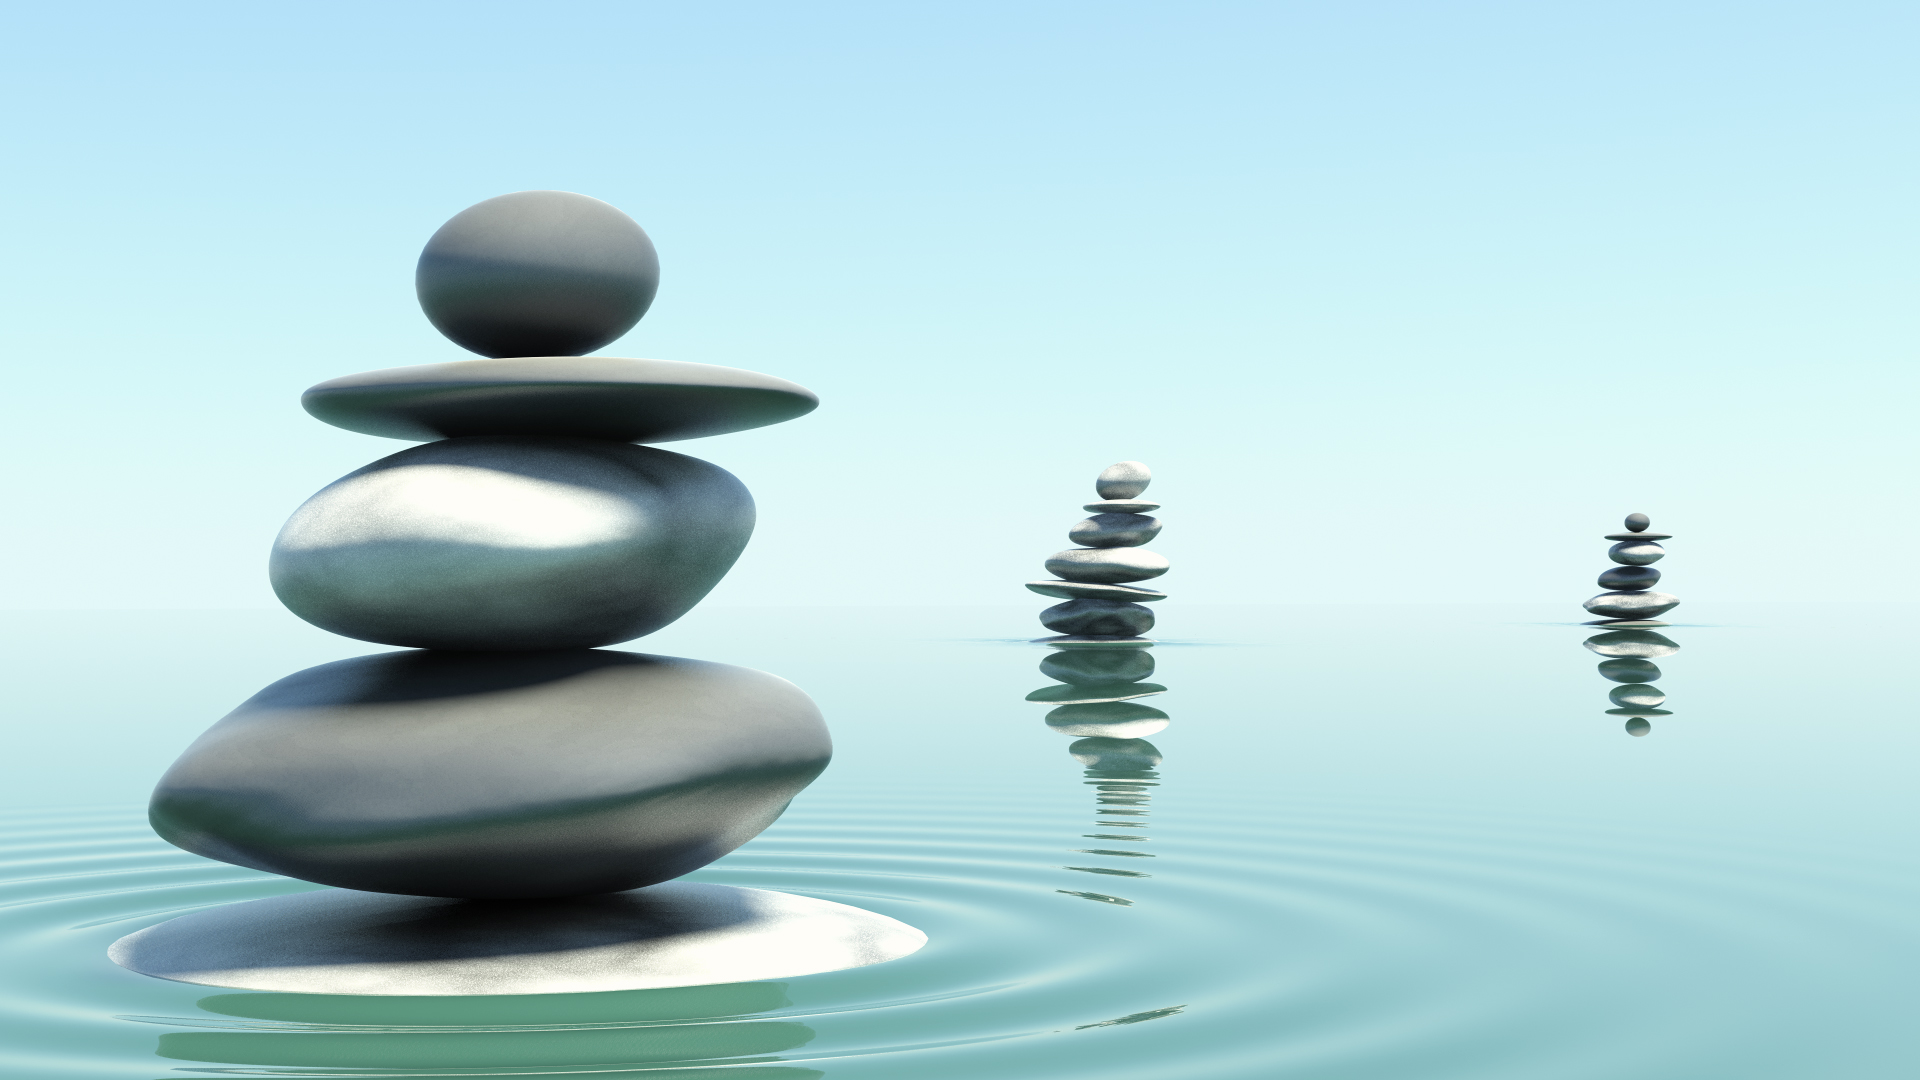 netfs70f201013219Zen stones Midday by HollowIchigoBankijpg 1920x1080